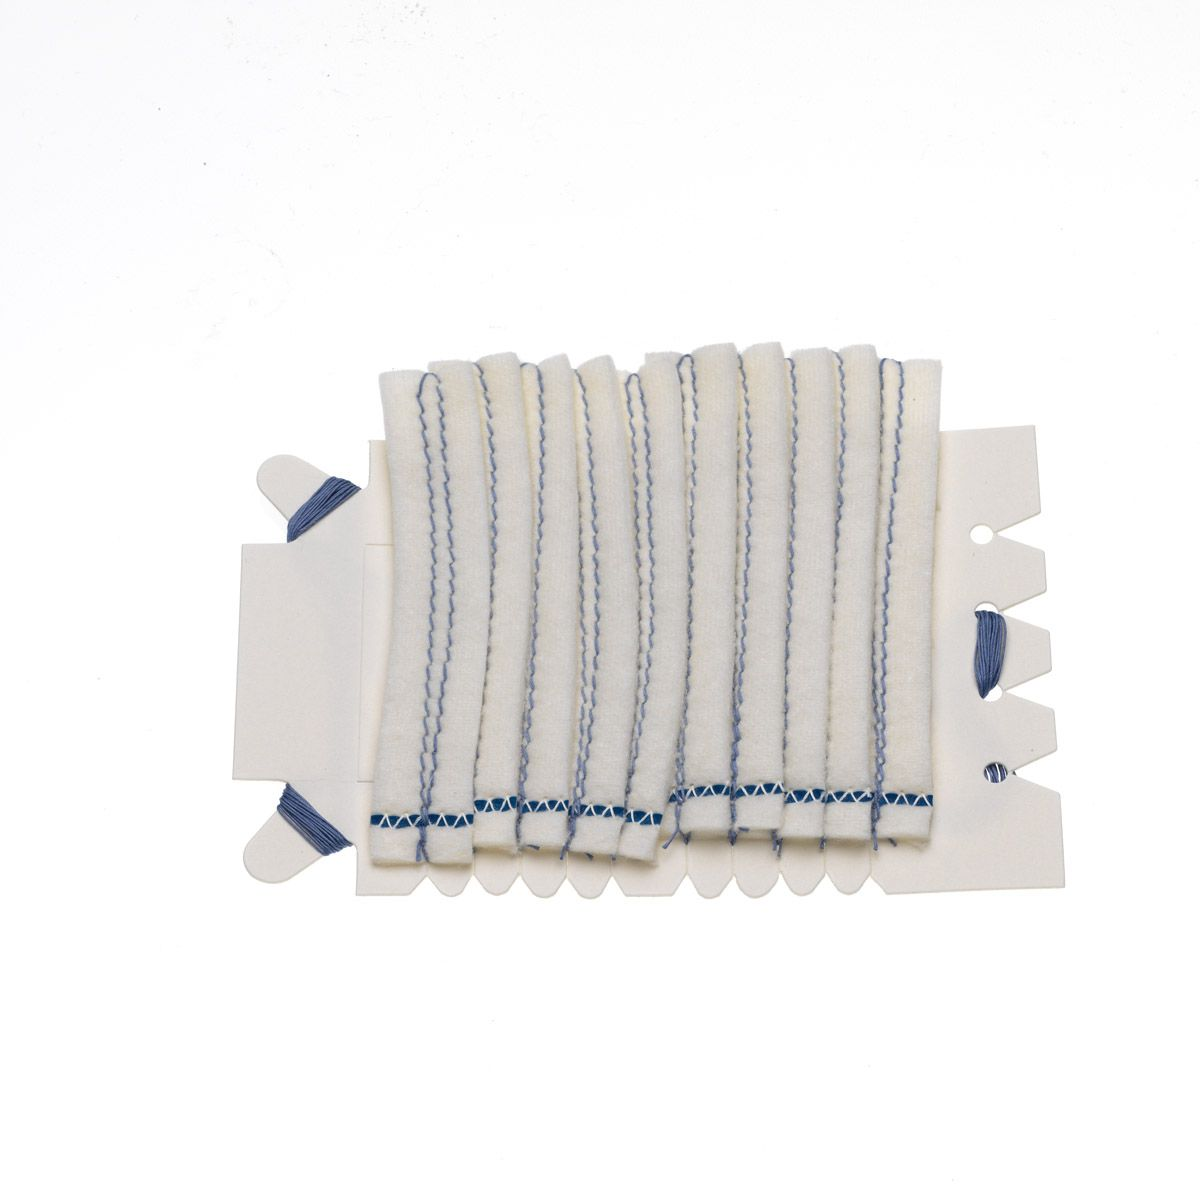 Sterile X-Ray Detectable Neuro Patties - Sponge, Dbl Strng, Xr, 1/2